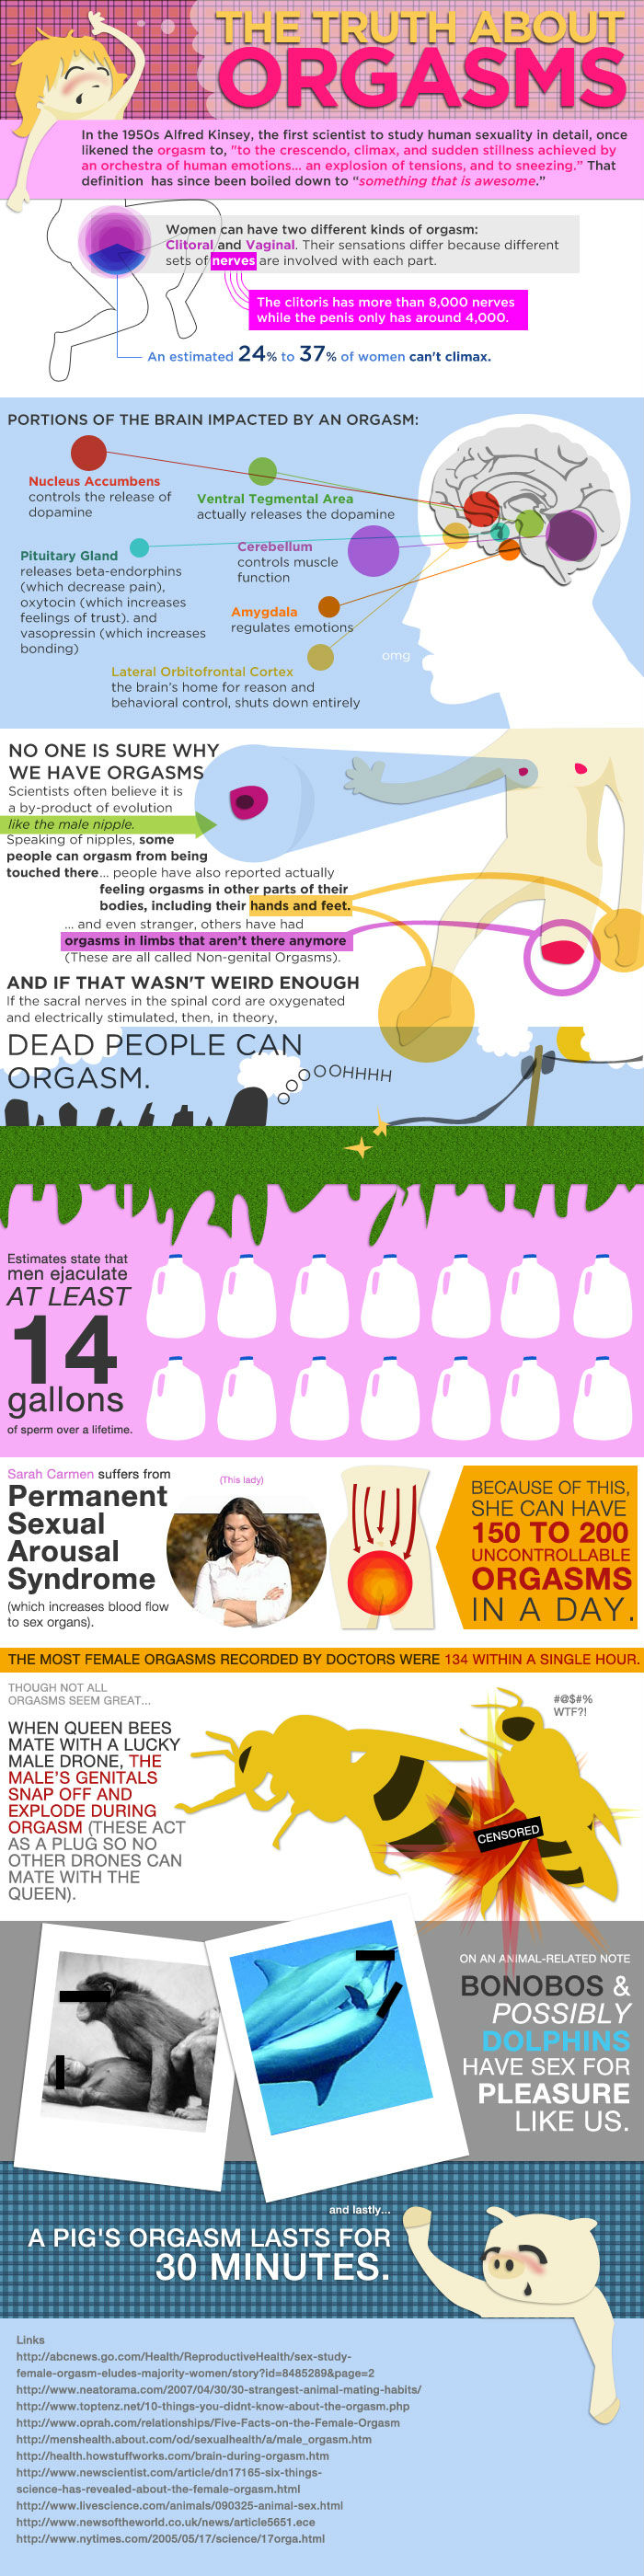 The Truth About Orgasms [Infographic]